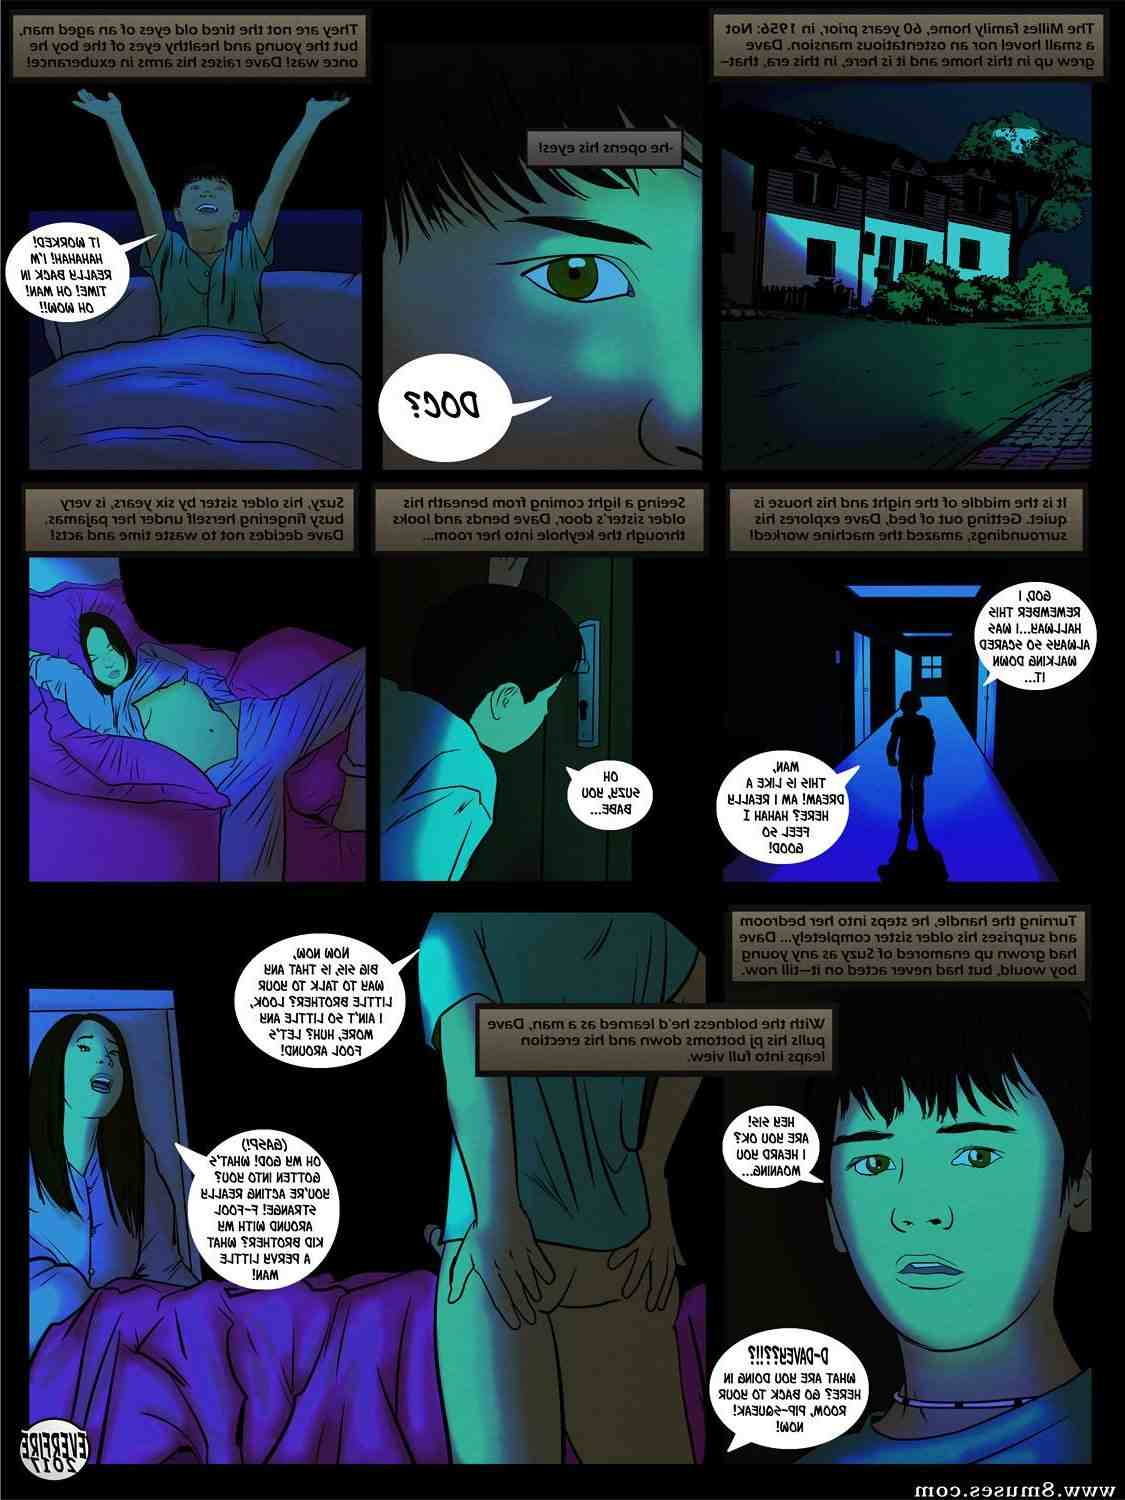 Everfire-Comics/Re-Life Re-Life__8muses_-_Sex_and_Porn_Comics_3.jpg